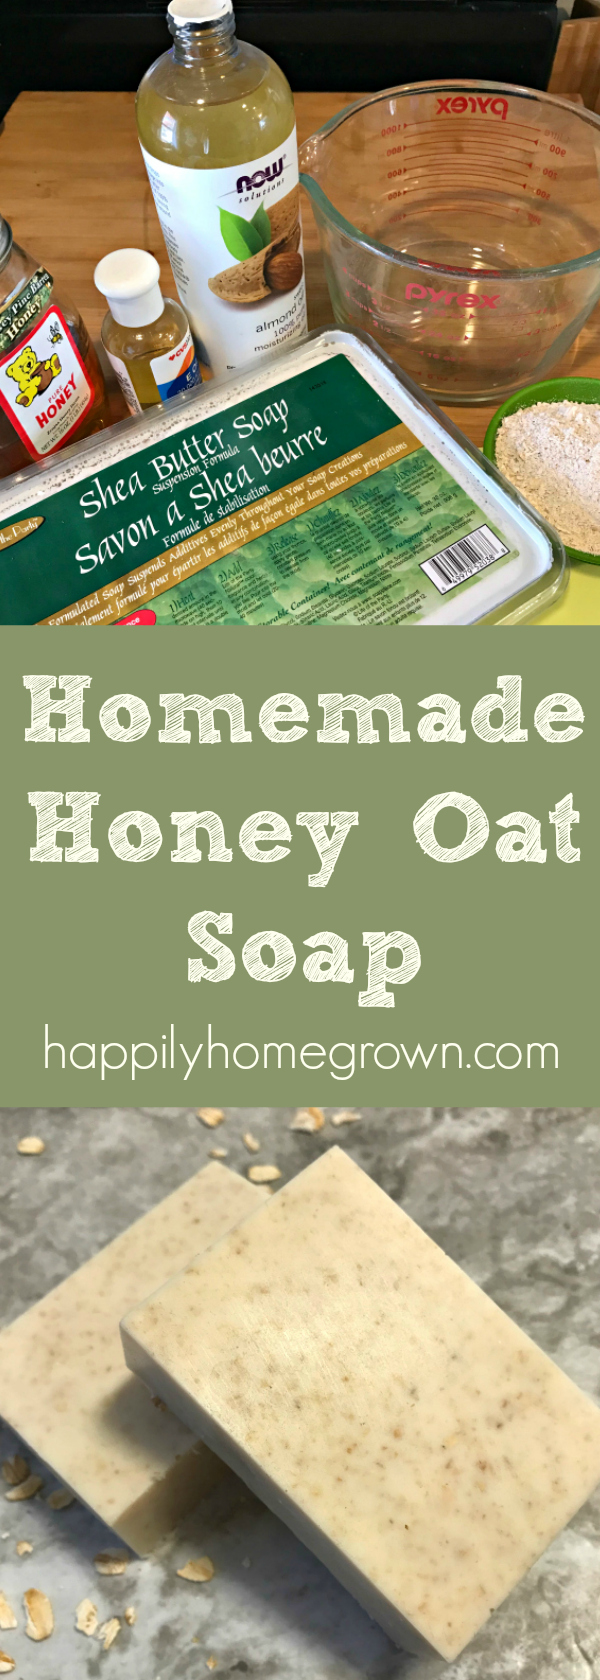 Homemade honey oat soap is the perfect homemade Christmas gift! You can make a batch in as little as 10 minutes. #HandmadeChristmas